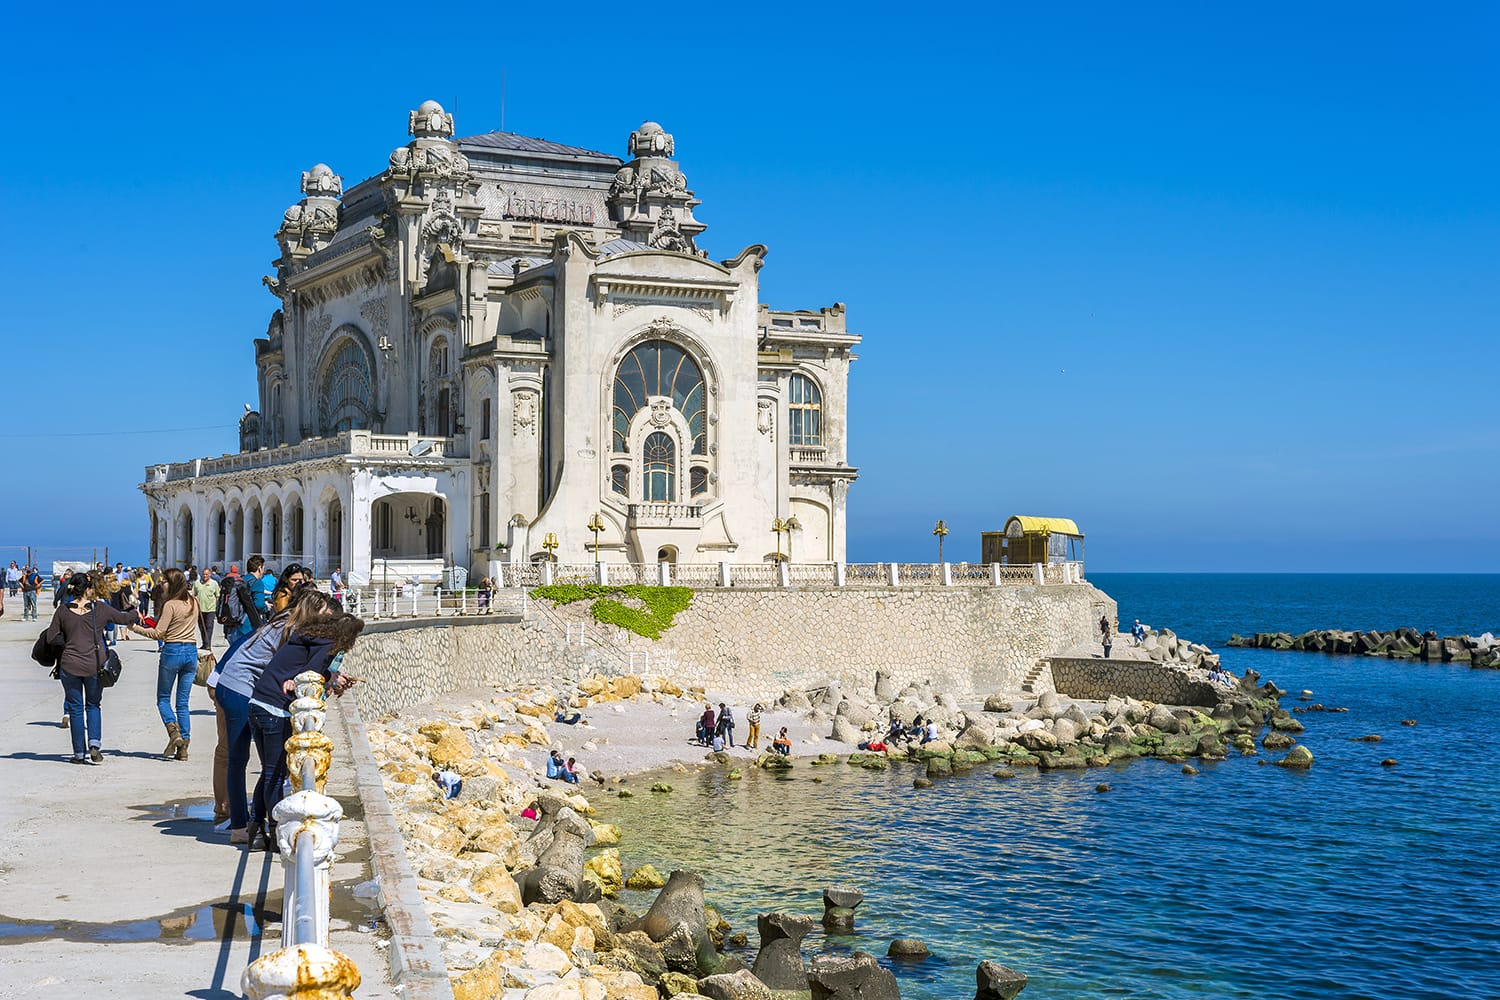 Famous Casino Palace in Constanta, Romania